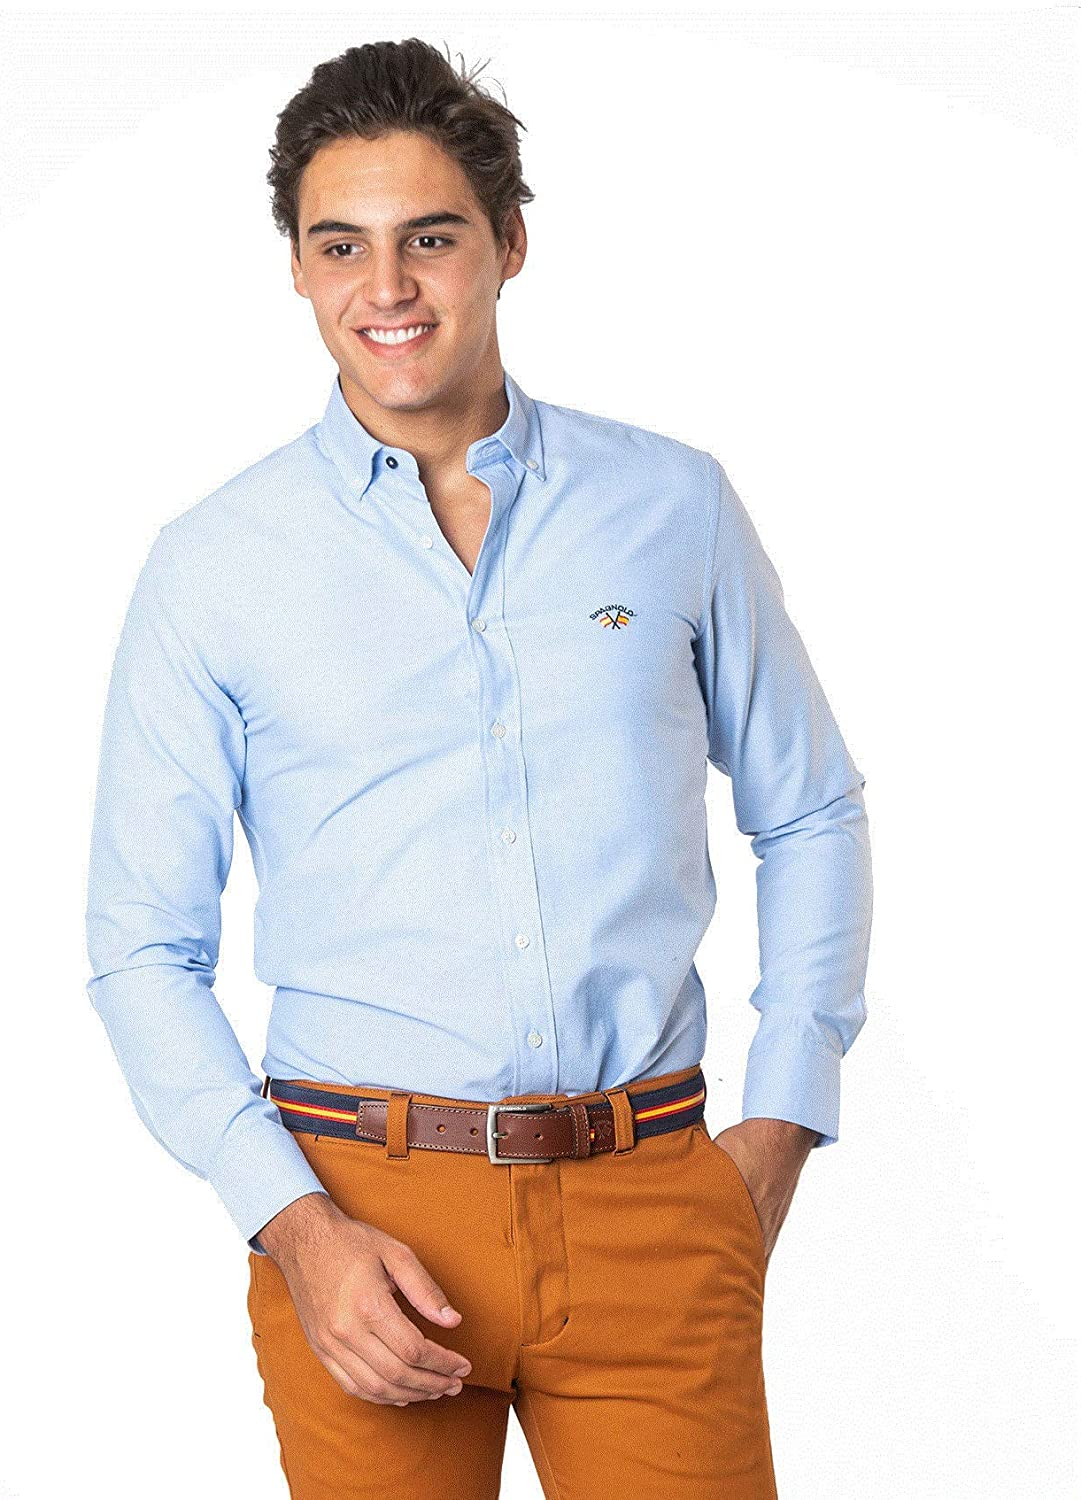 SPAGNOLO PAUL & ESTHER Camisa con Boton Basica Oxford 8068 (6/XXL): Amazon.es: Ropa y accesorios